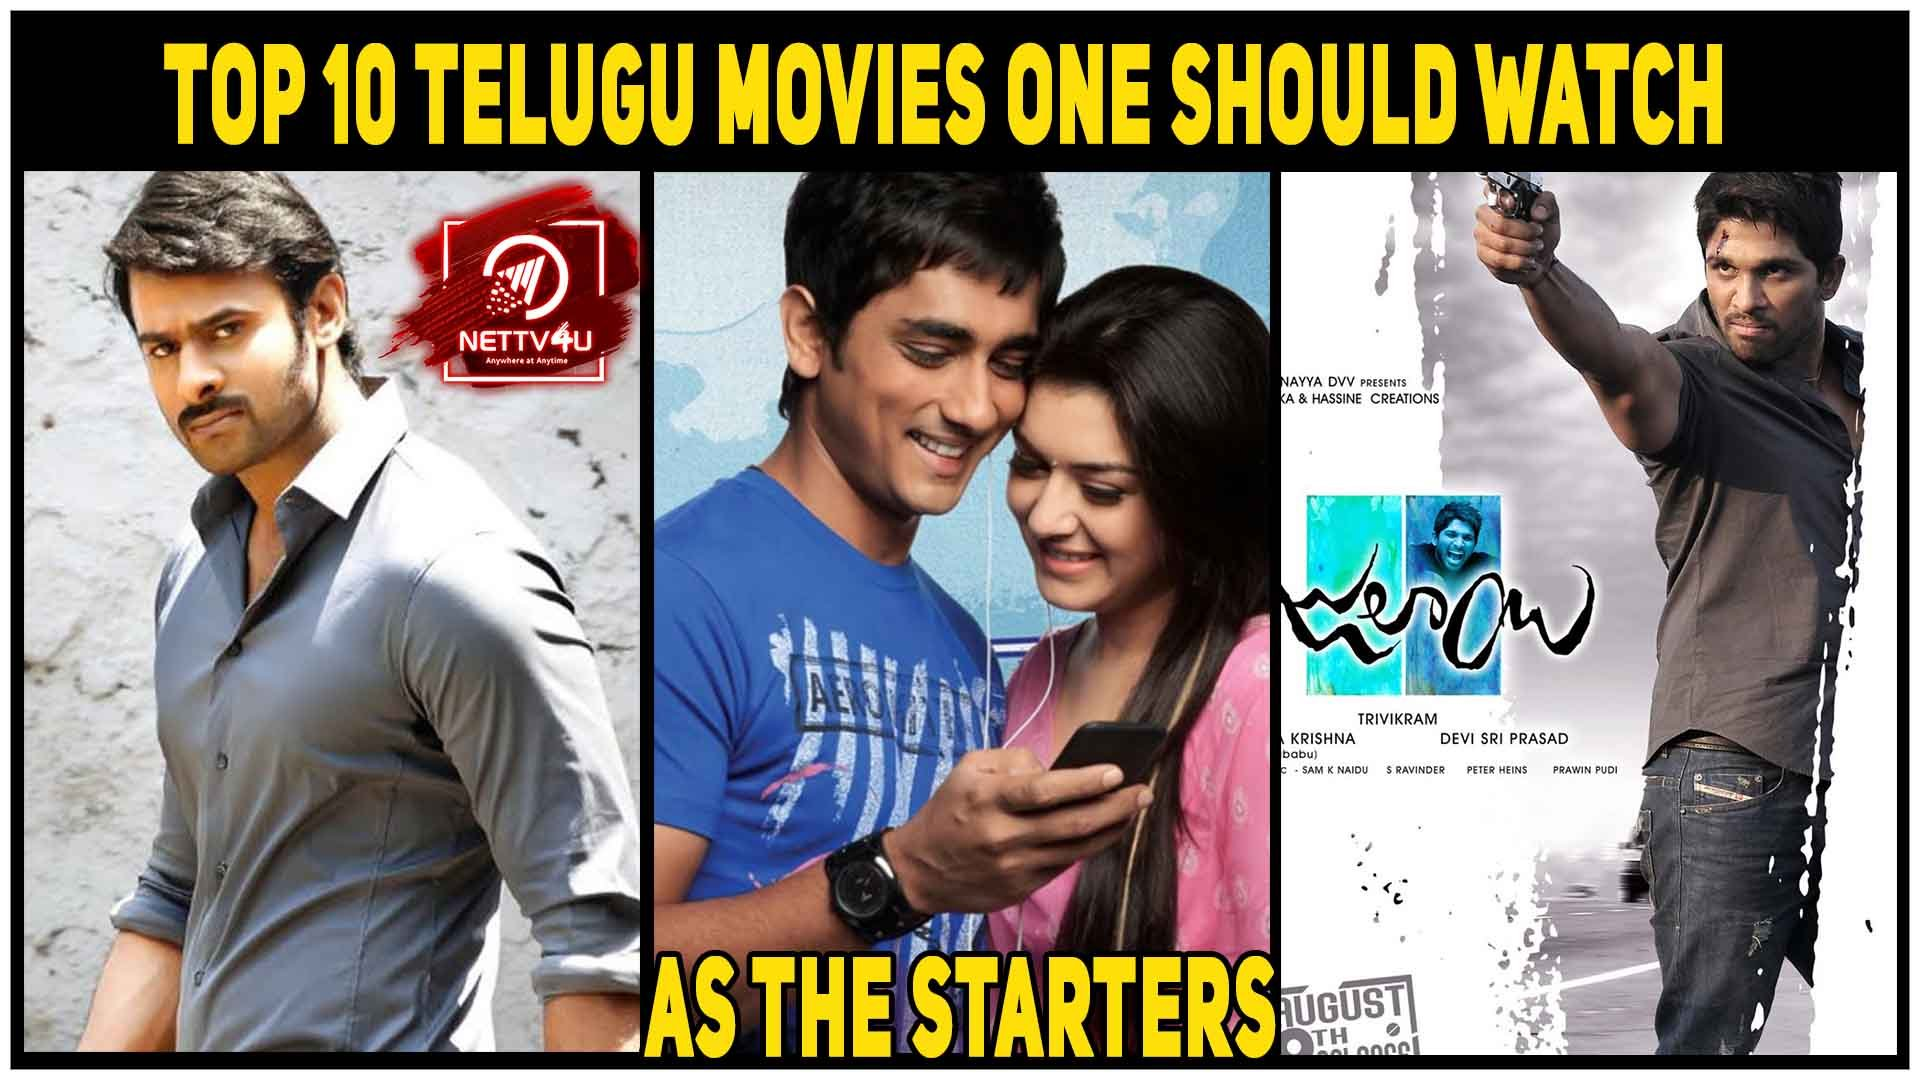 Top 10 Telugu Movies One Should Watch As The Starters